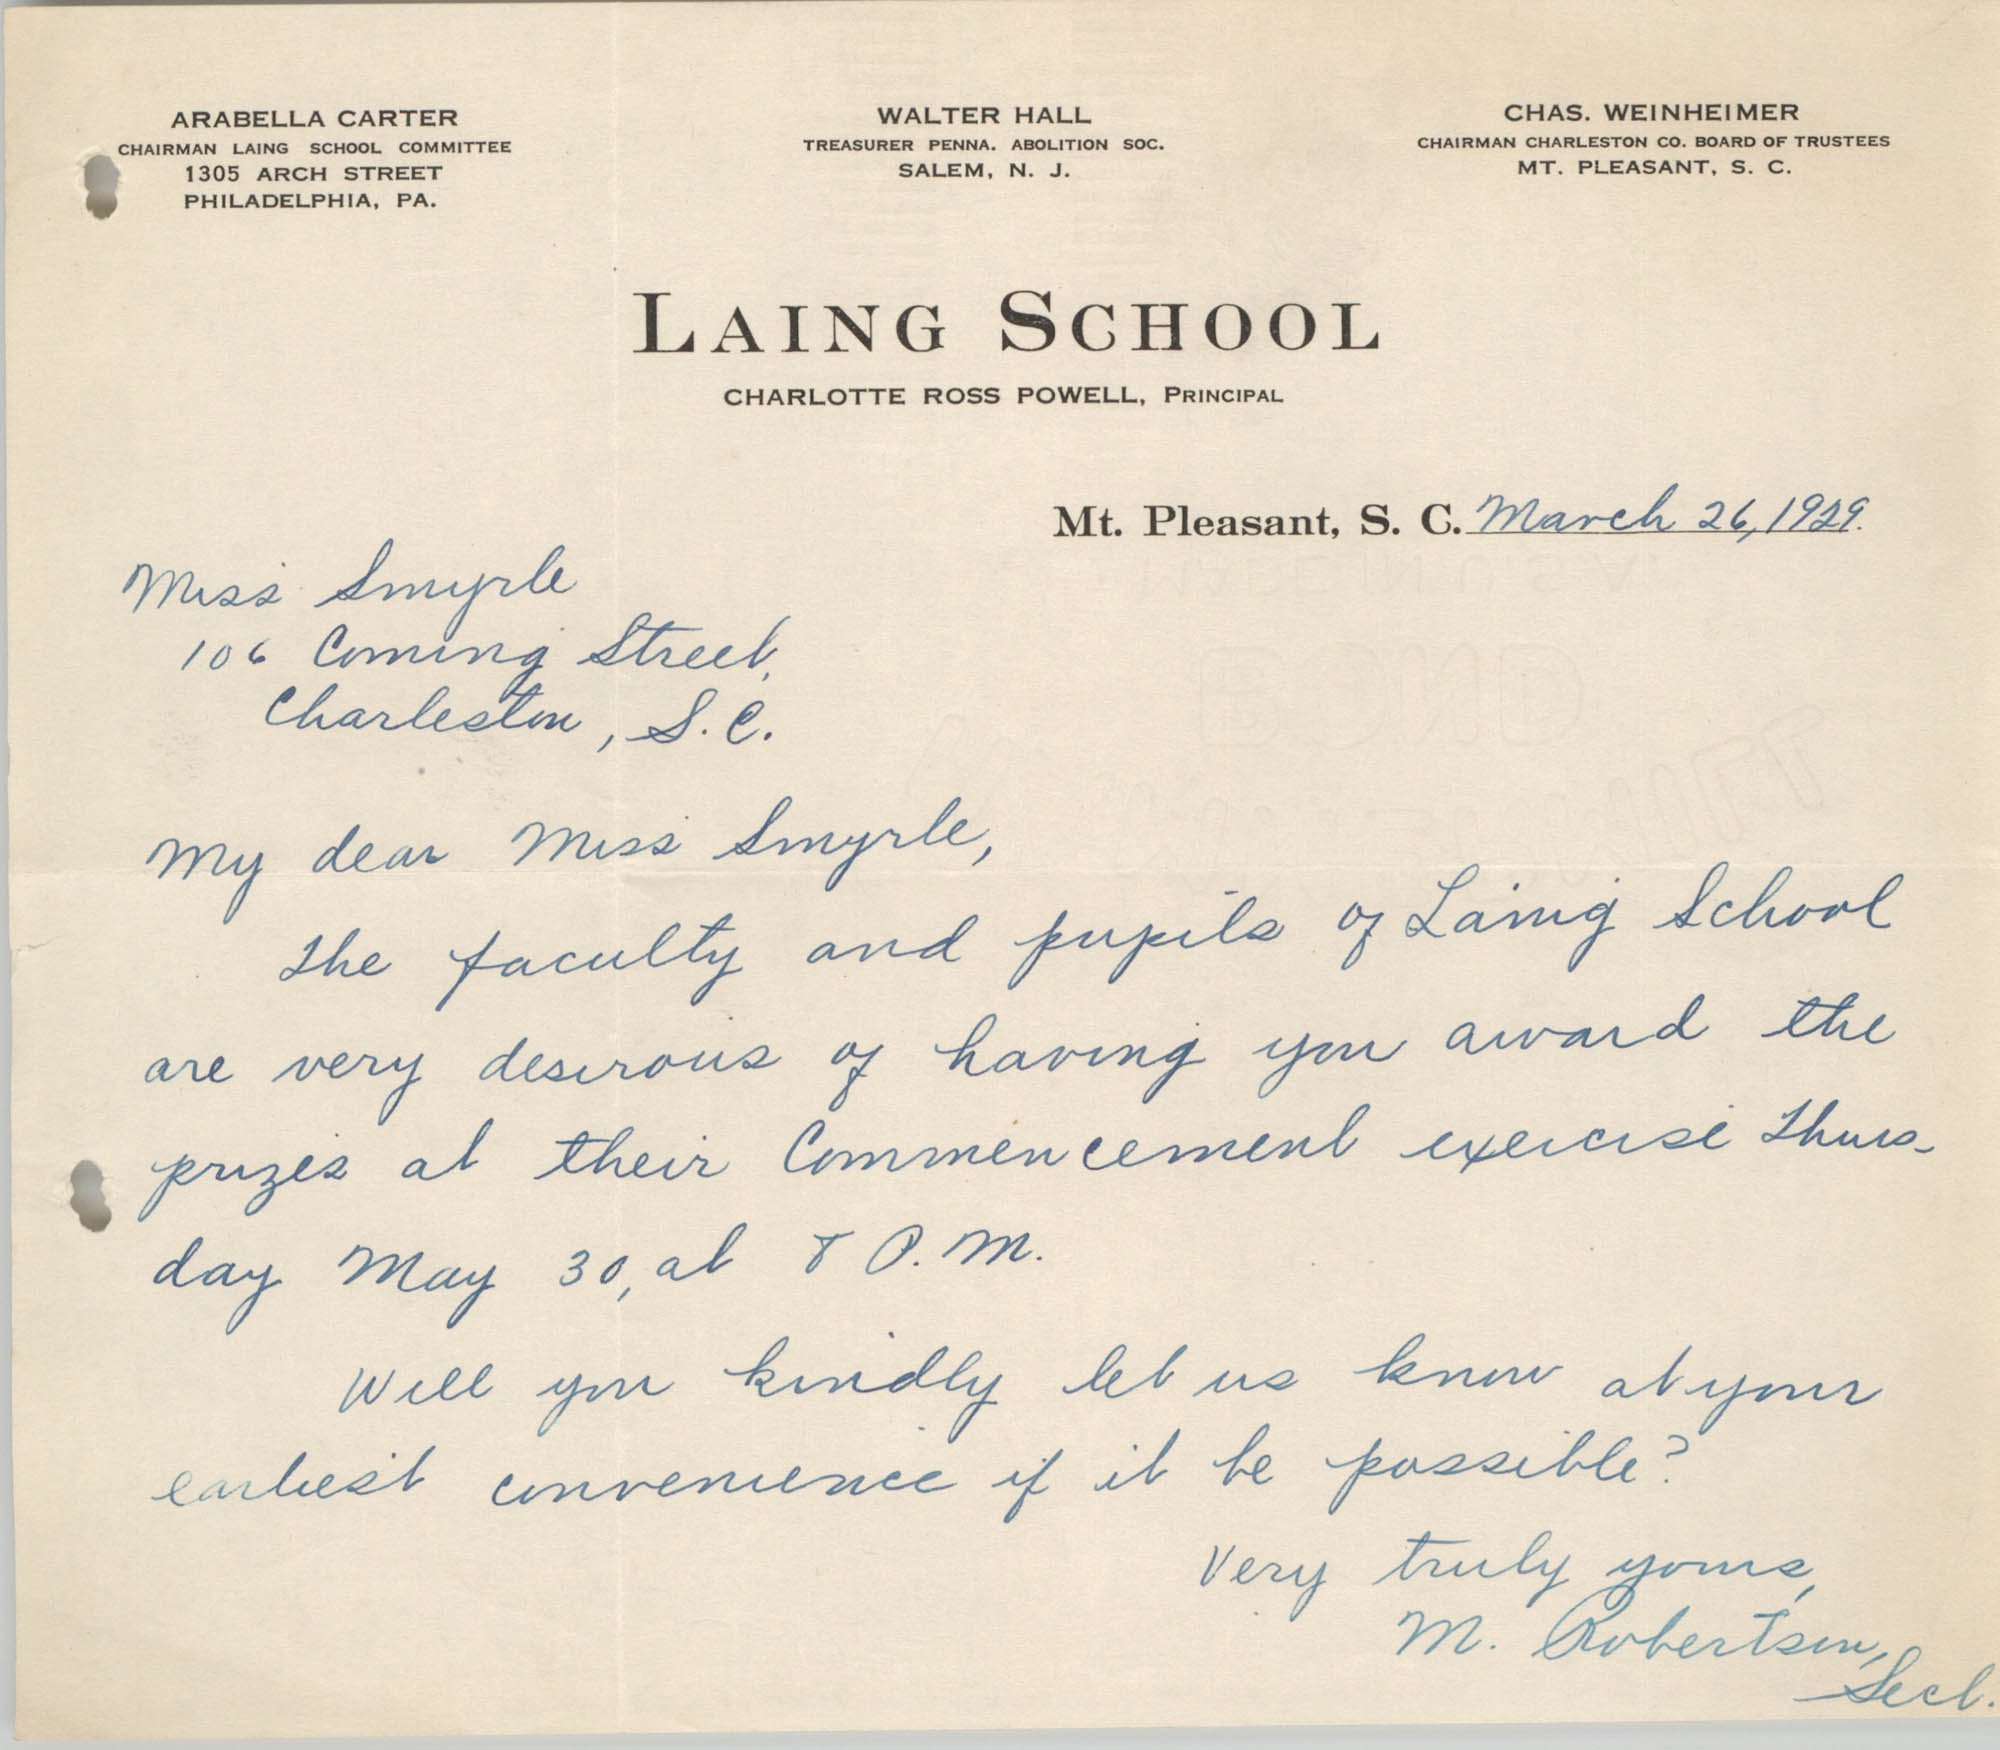 Letter from M. Robertson to Ella L. Smyrl, March 26, 1929